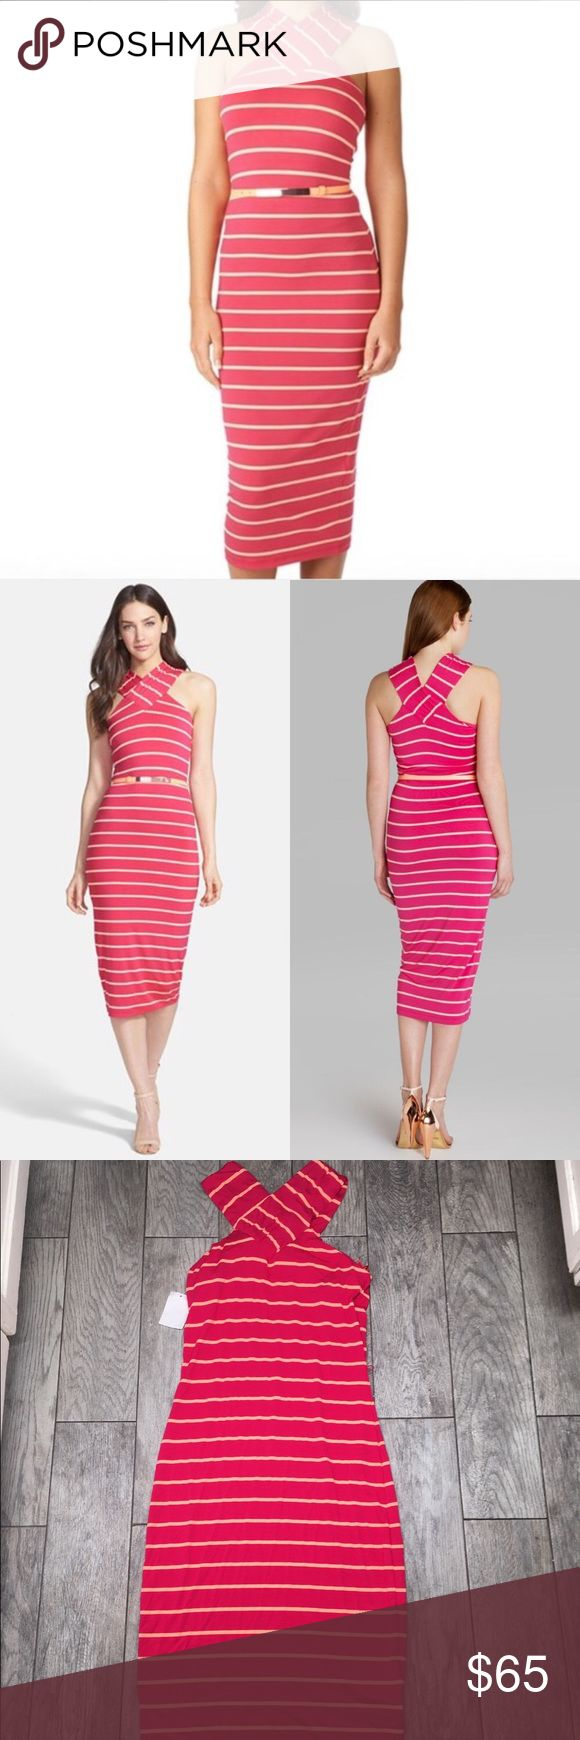 "Ted Baker canna crossover neck striped pink dress Ted Baker canna crossover neck striped pink dress. Sleeveless halter midi dress. Stretchy, form fitting look. 49"" length. Size 4. NWT- no flaws. Belt not included. Ted Baker Dresses Midi"